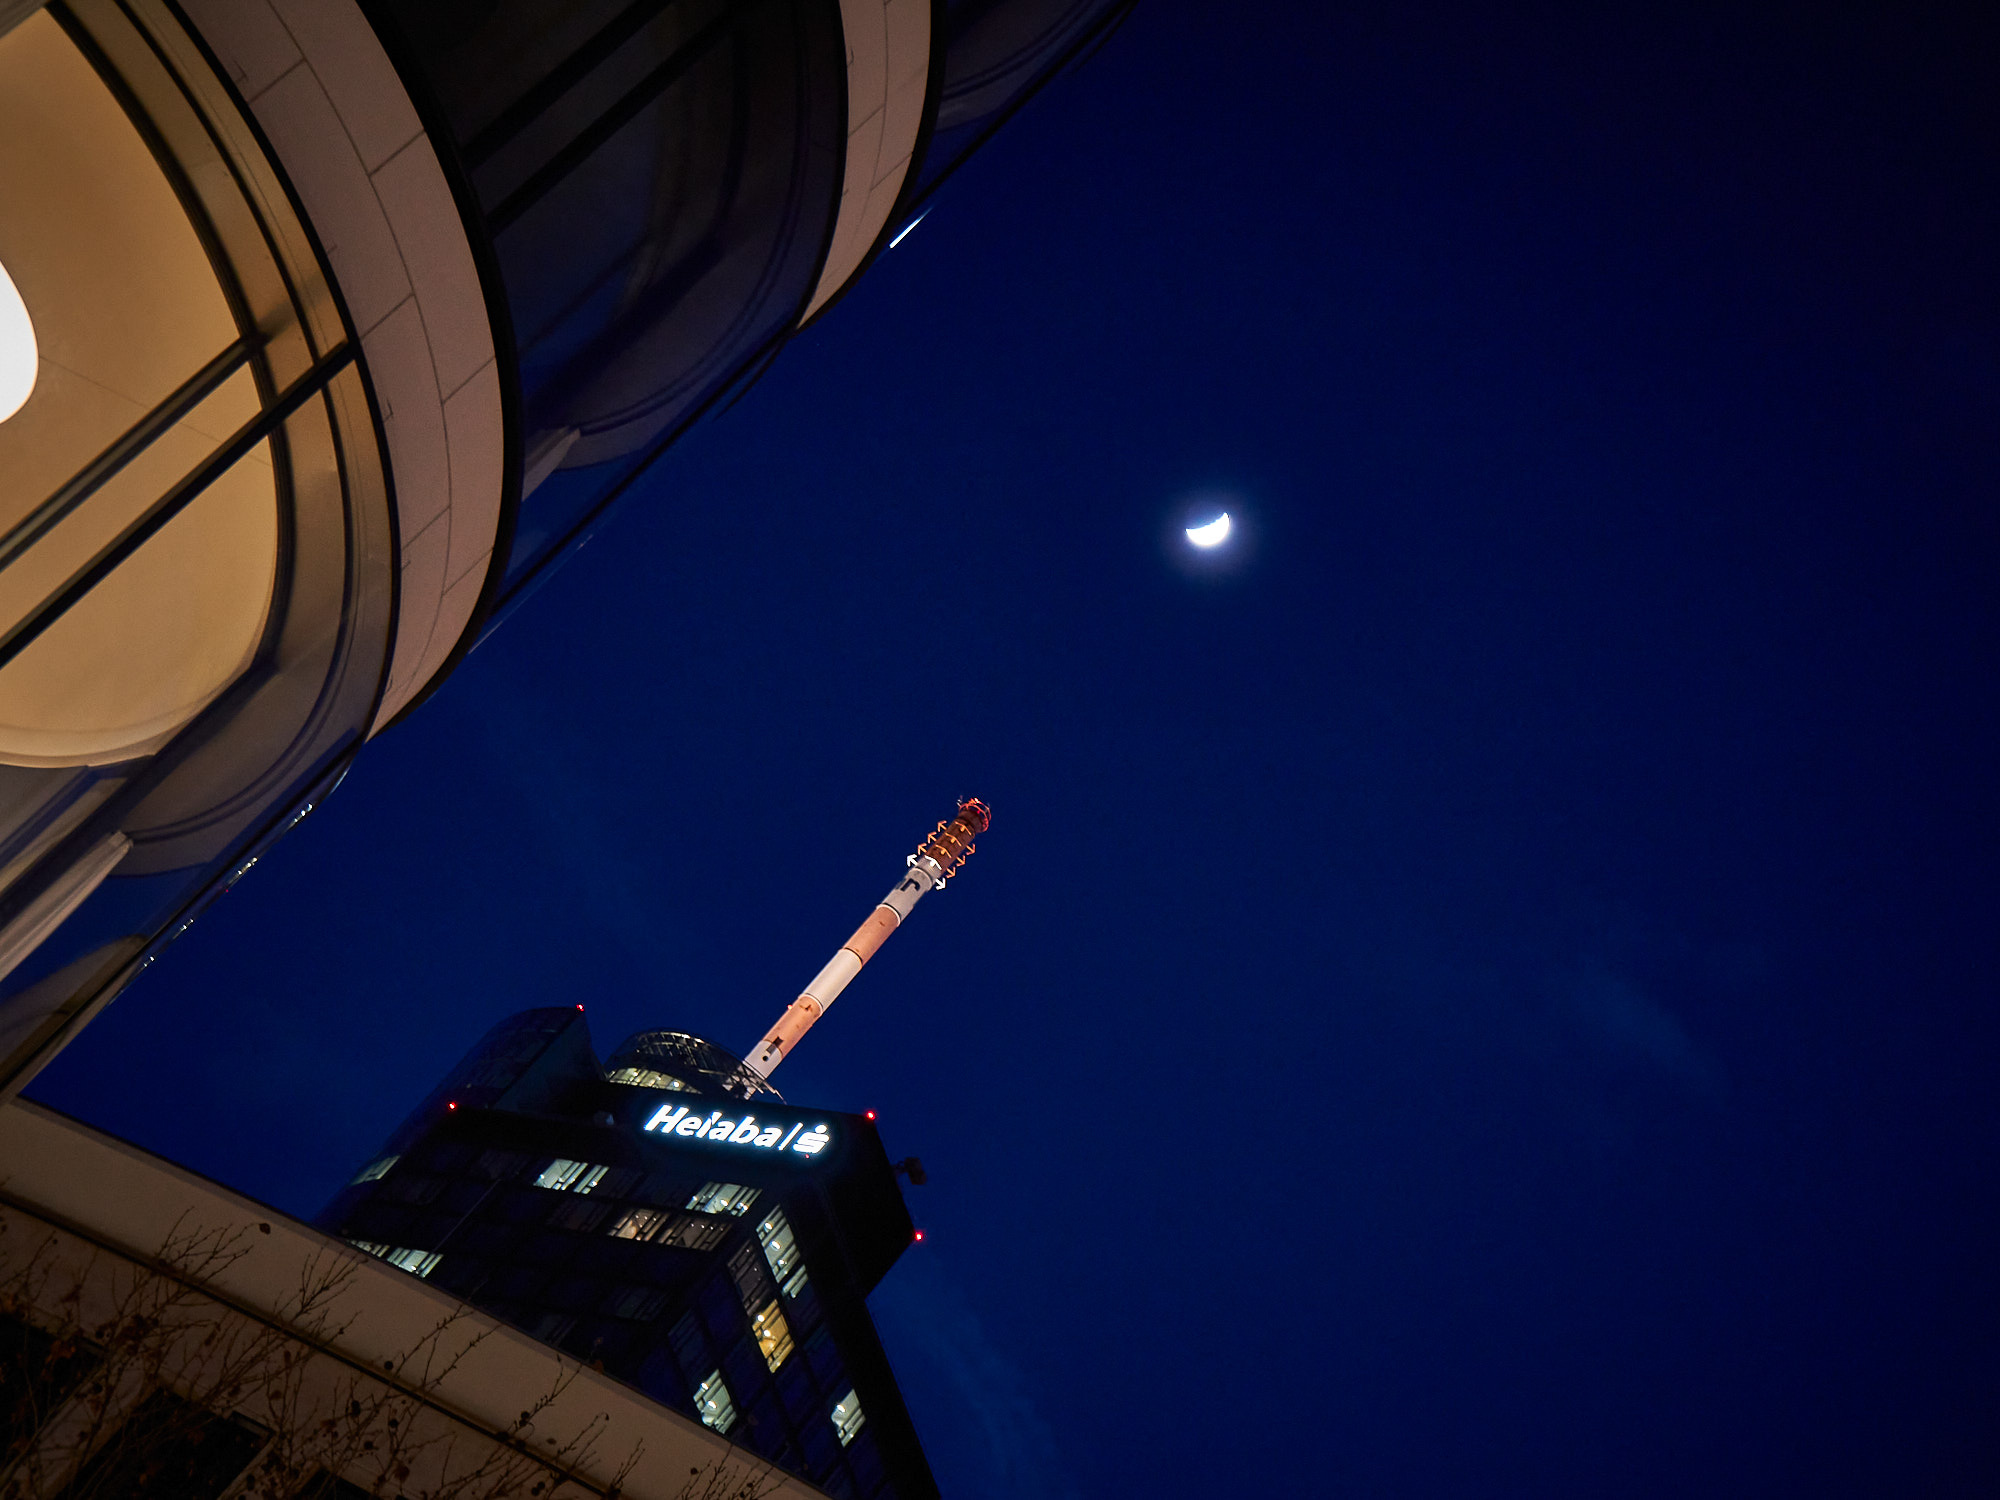 Maintower-Mond